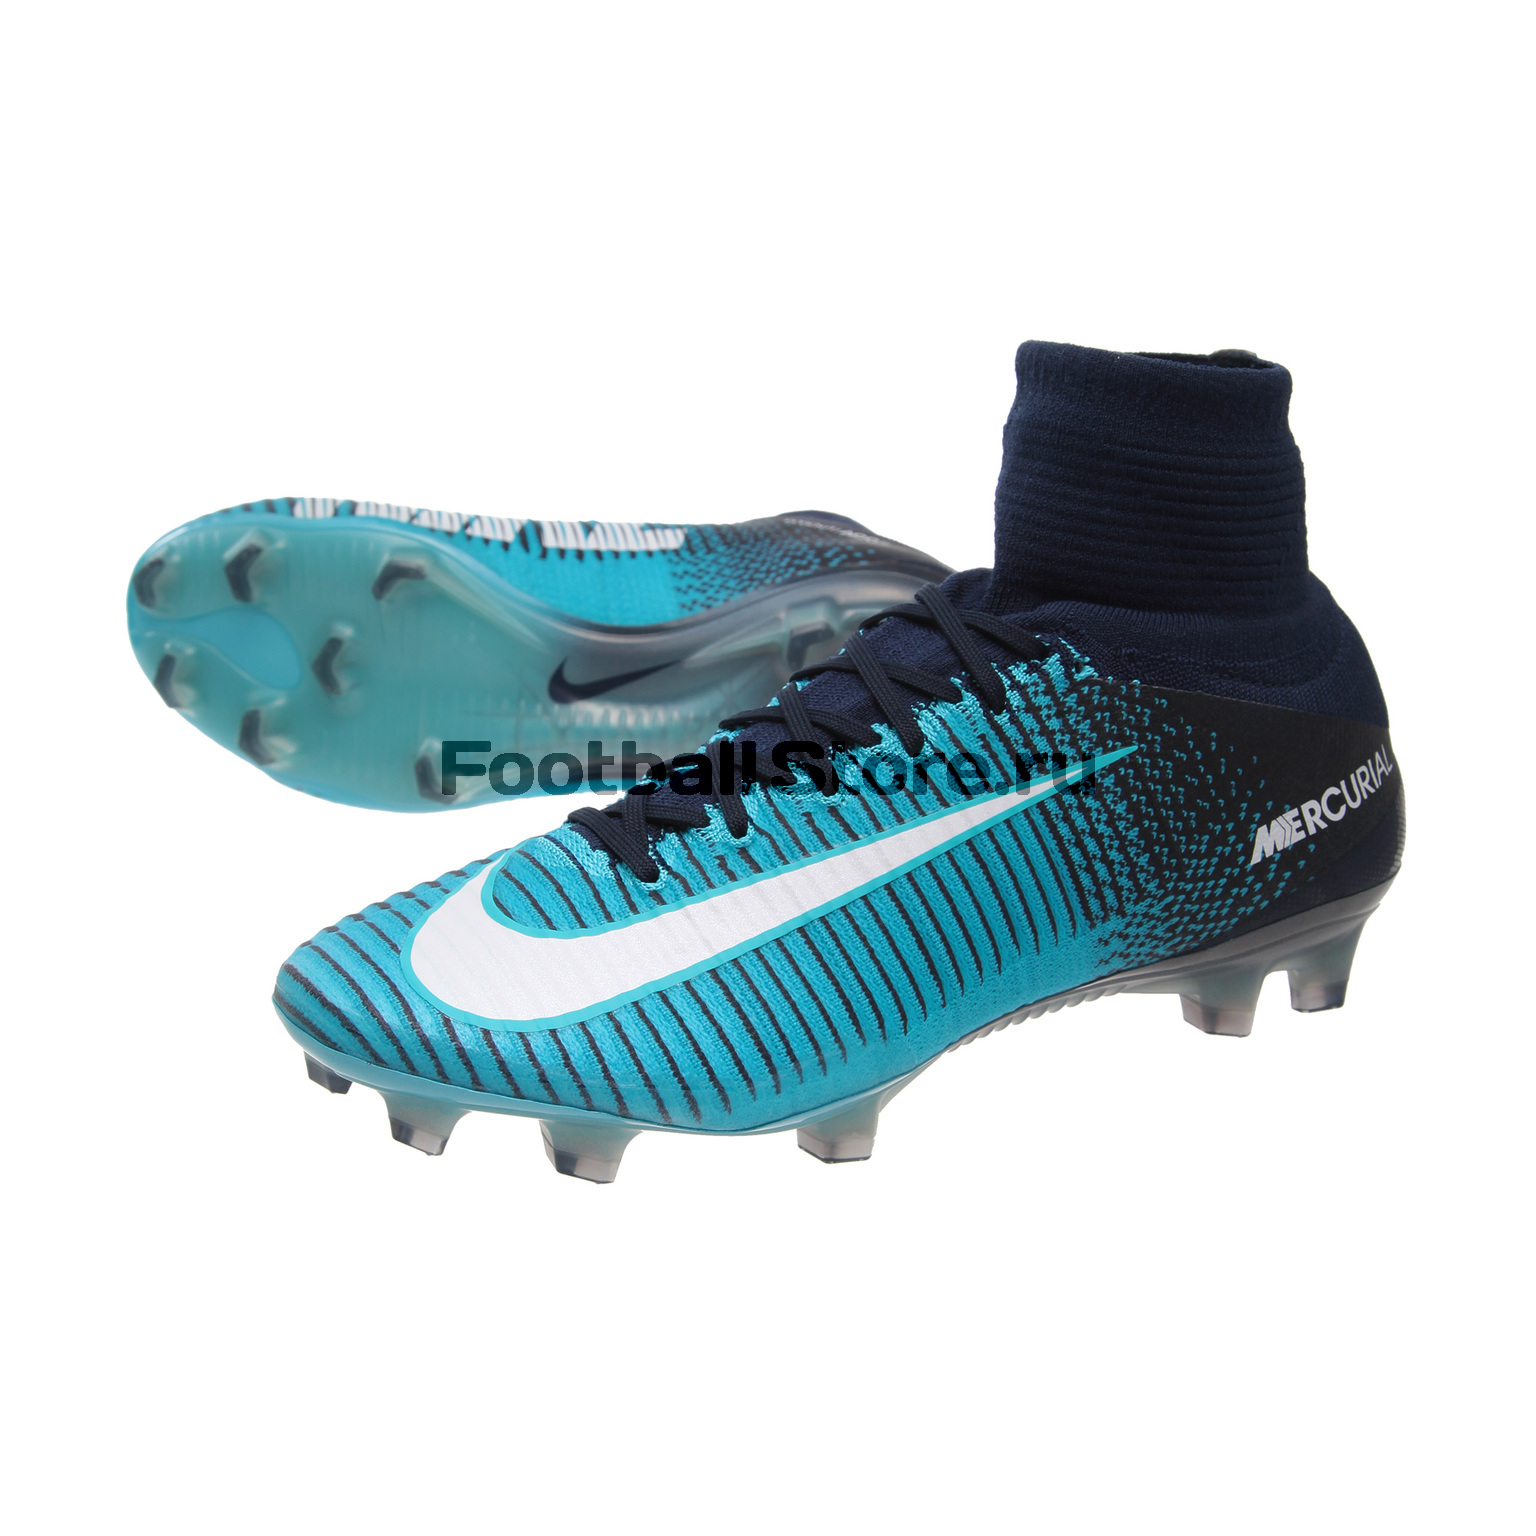 Бутсы Nike Mercurial Superfly V DF FG 831940-414 детские бутсы nike бутсы nike jr phantom 3 elite df fg ah7292 081